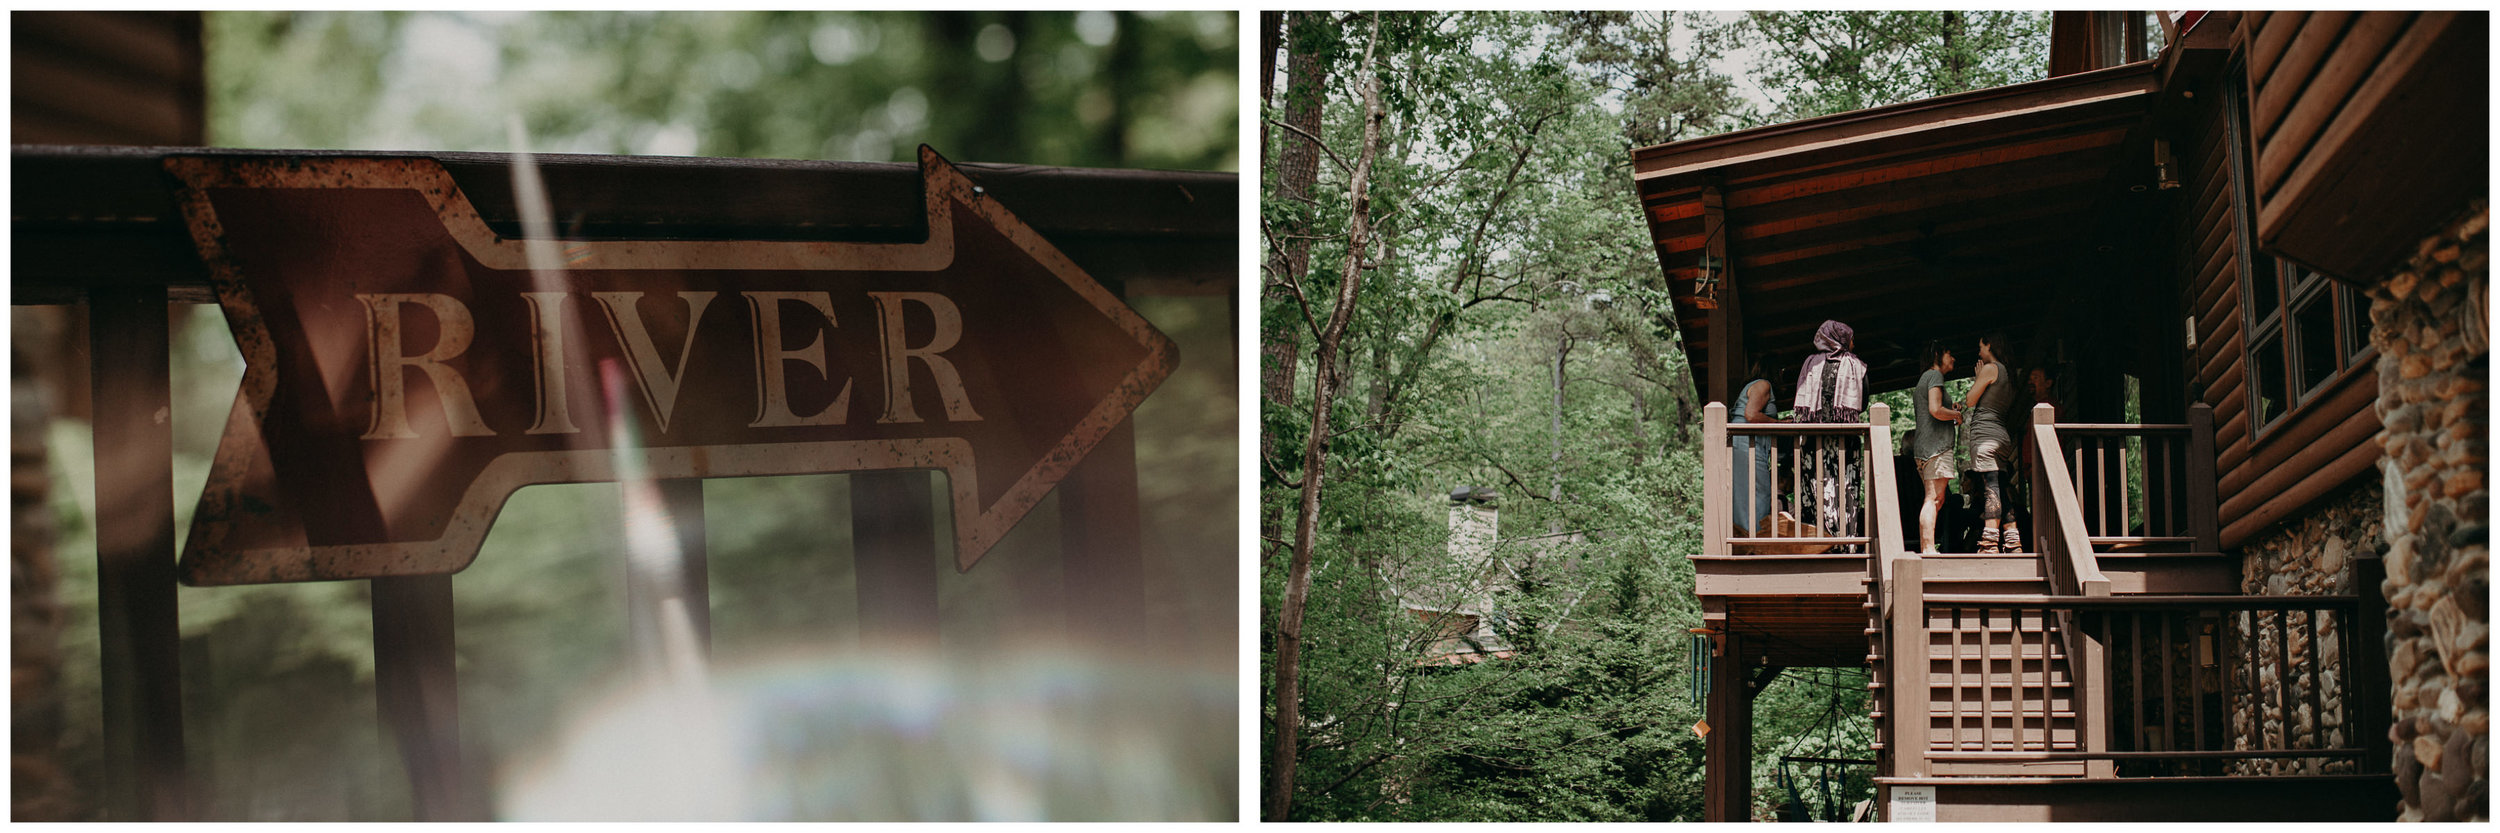 5 - Forest wedding boho enchanched fairytale wedding atlanta - ga , intimate, elopement, nature, greens, good vibes. Aline Marin Photography .jpg